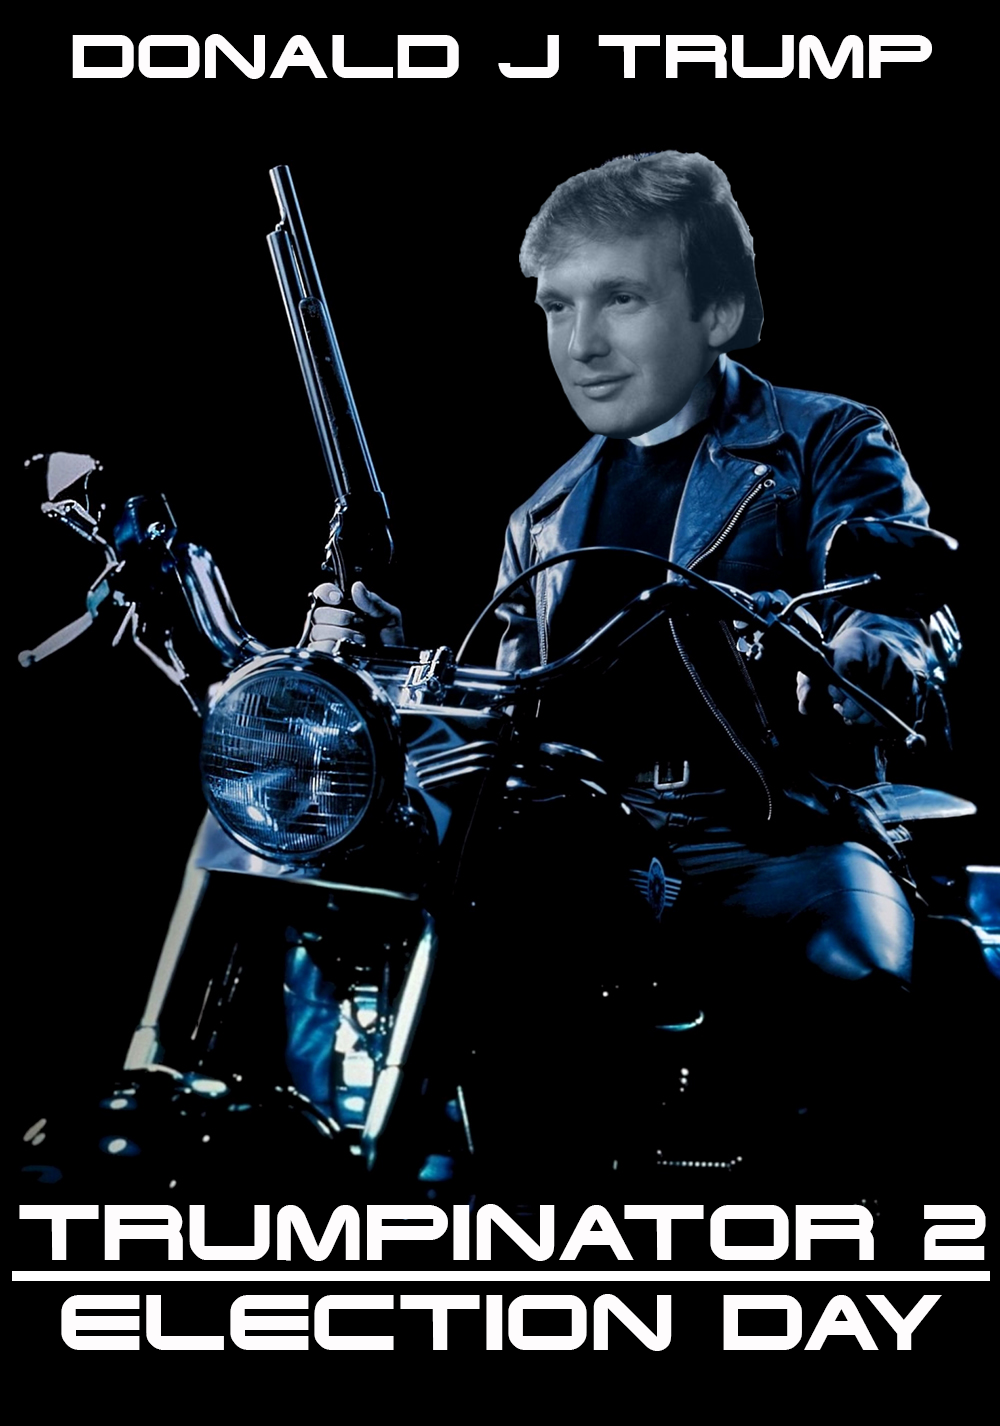 b1d trumpinator 2 election day donald trump know your meme,Day After Election Meme